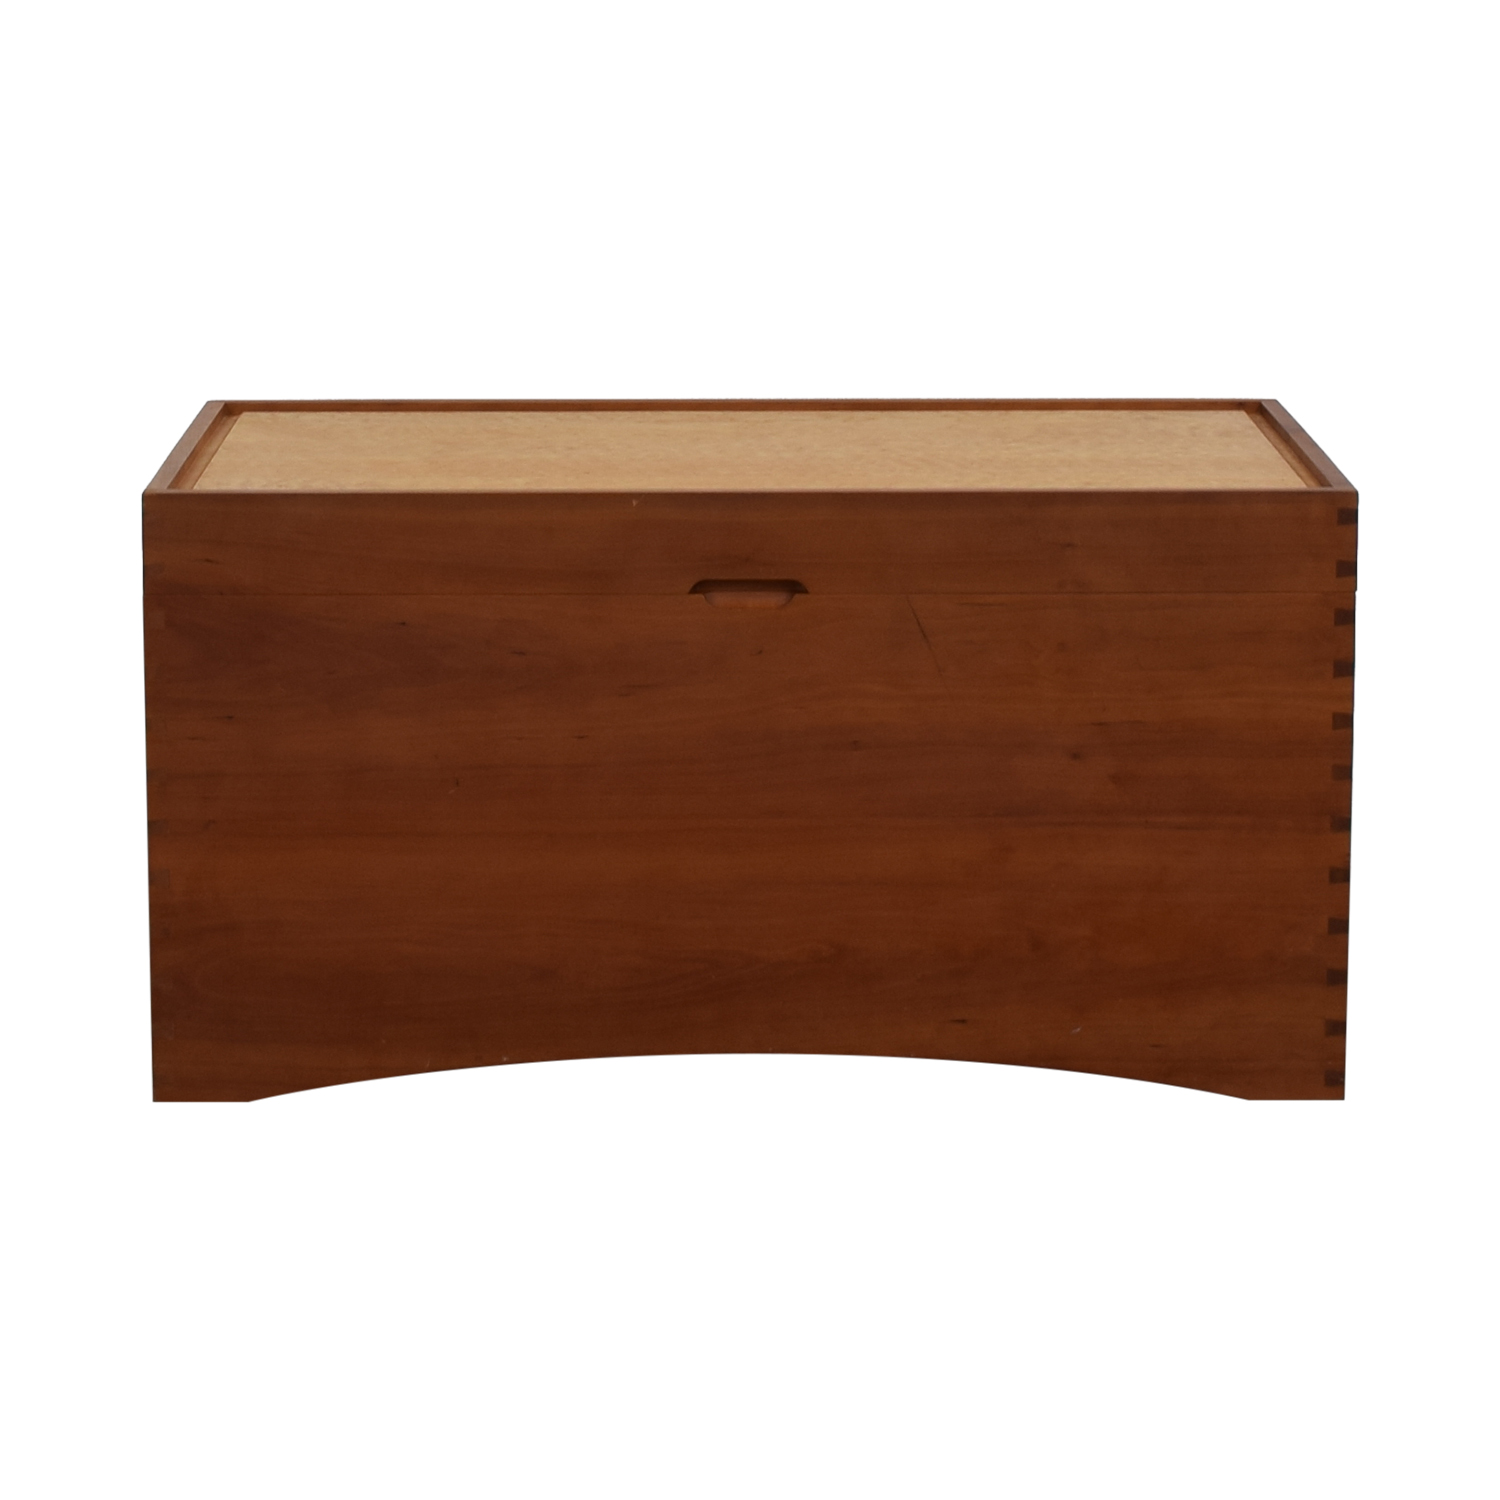 shop The Joinery The Joinery Custom Wood Hope Chest Trunk online